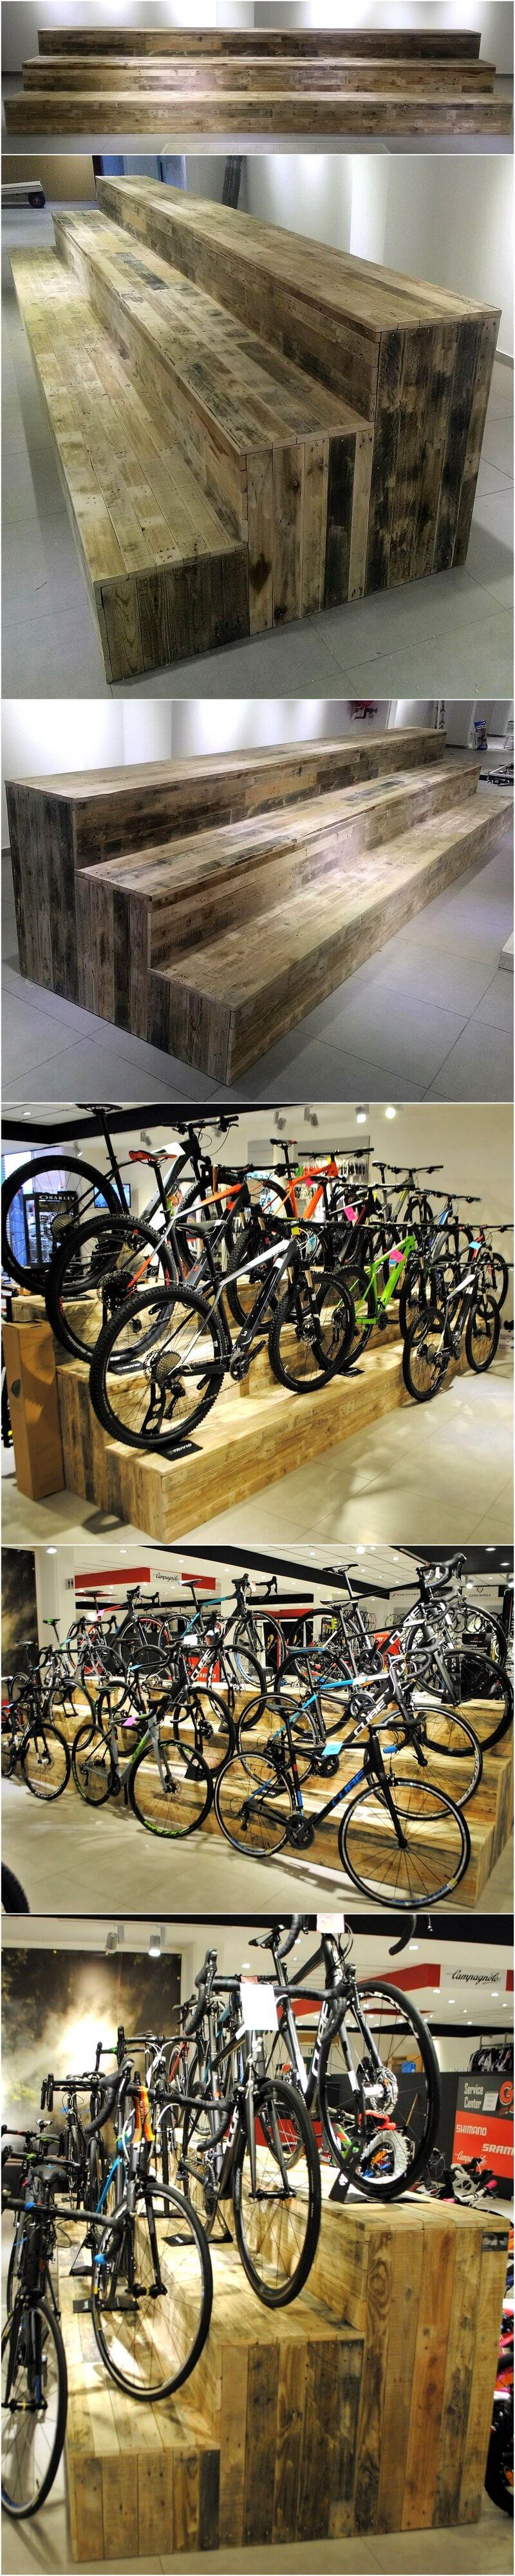 wood pallets made bicycle stands